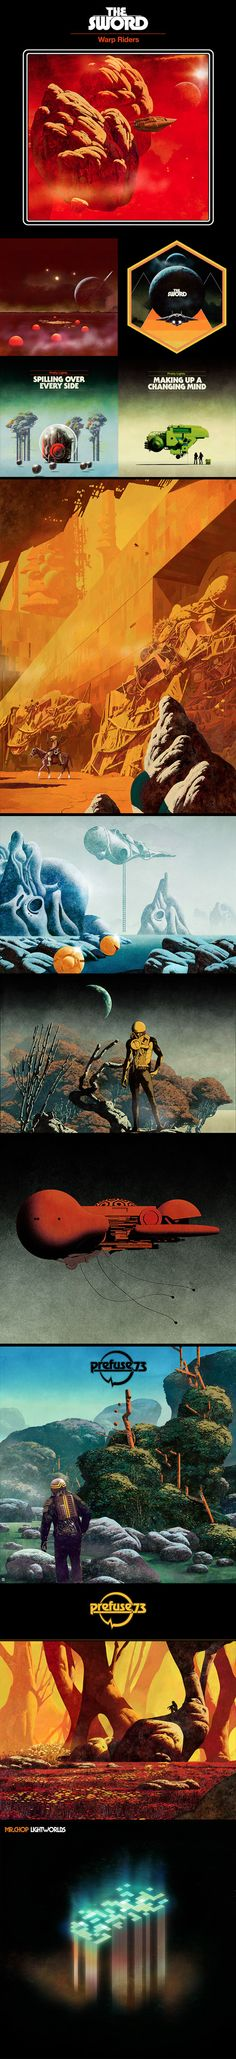 Dan McPharlin  http://www.flickr.com/photos/danmcp